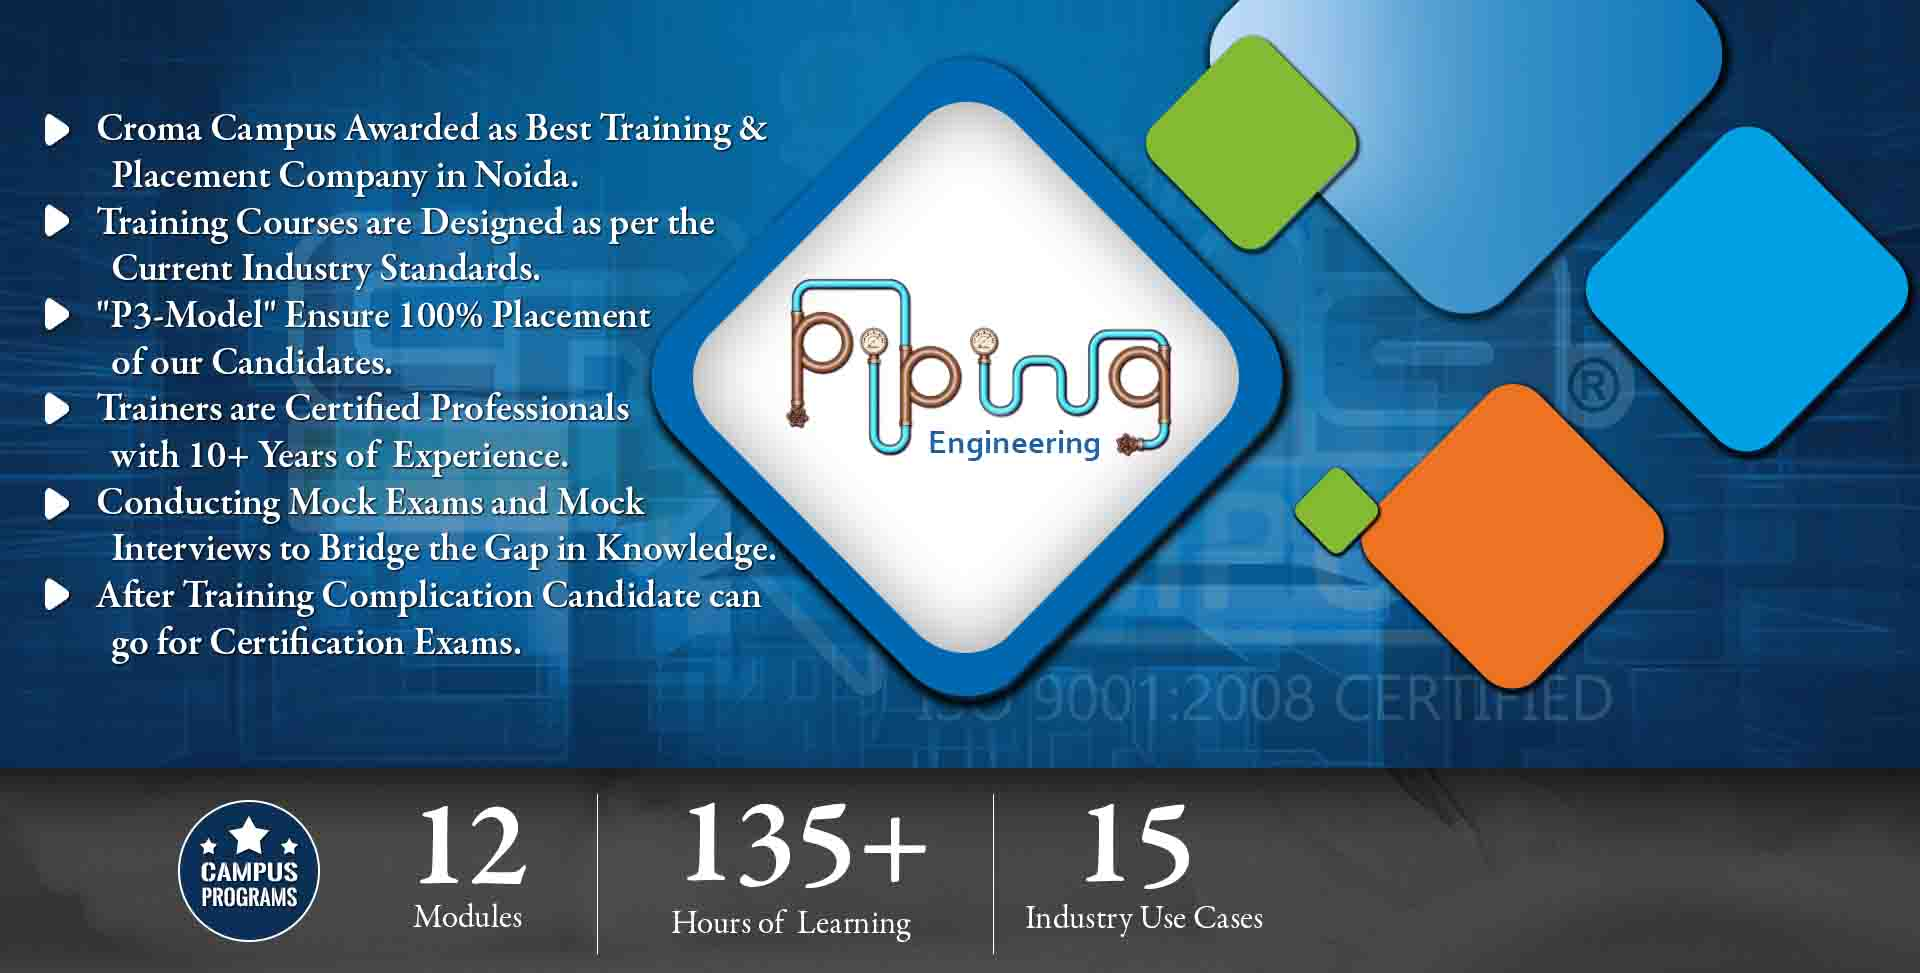 Piping Engineering Training In Noida Layout Optimization Croma Campus